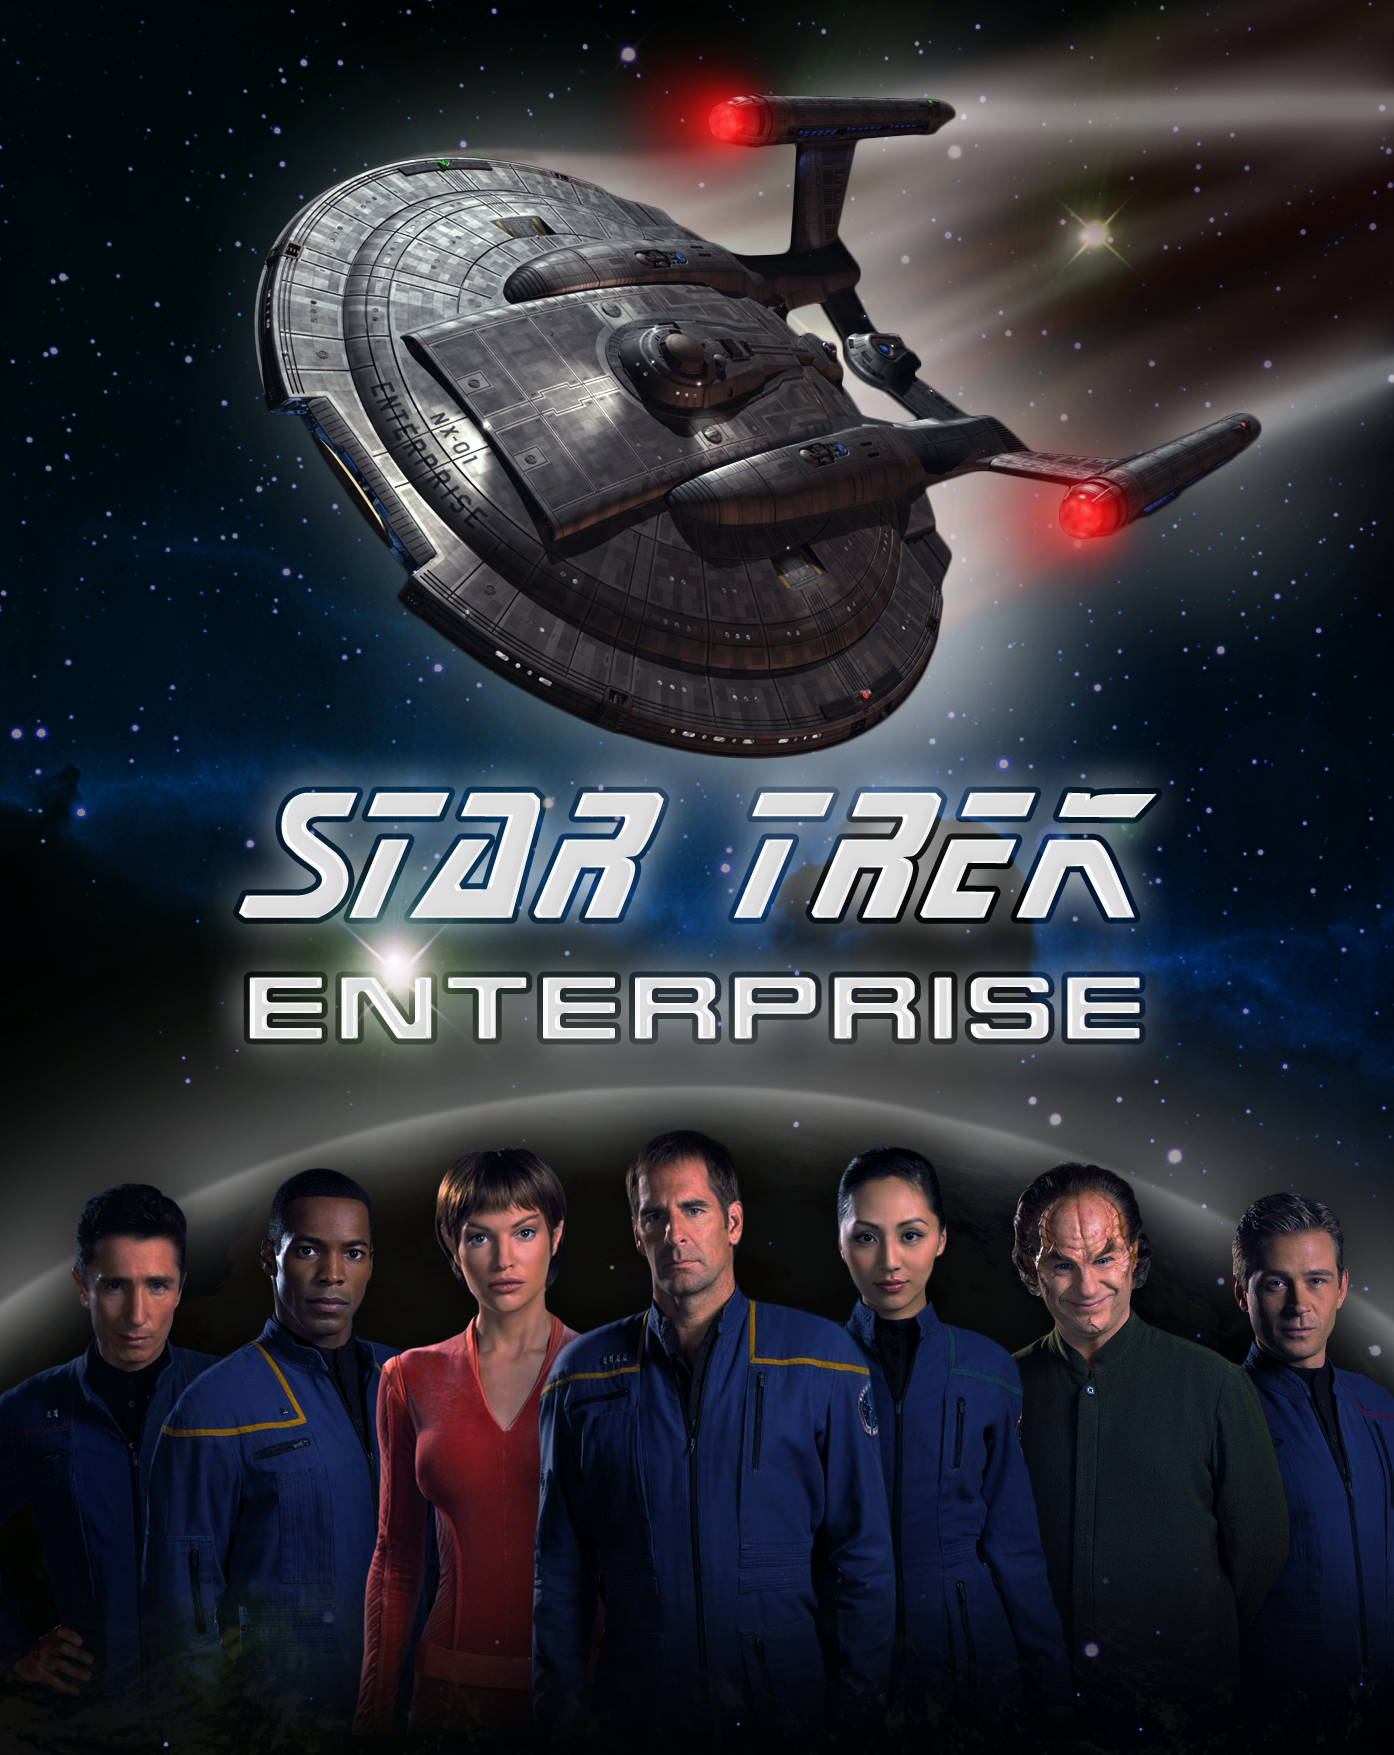 Star Trek: Enterprise Star_trek_enterprise_poster_by_chrisstian-d2yurkf